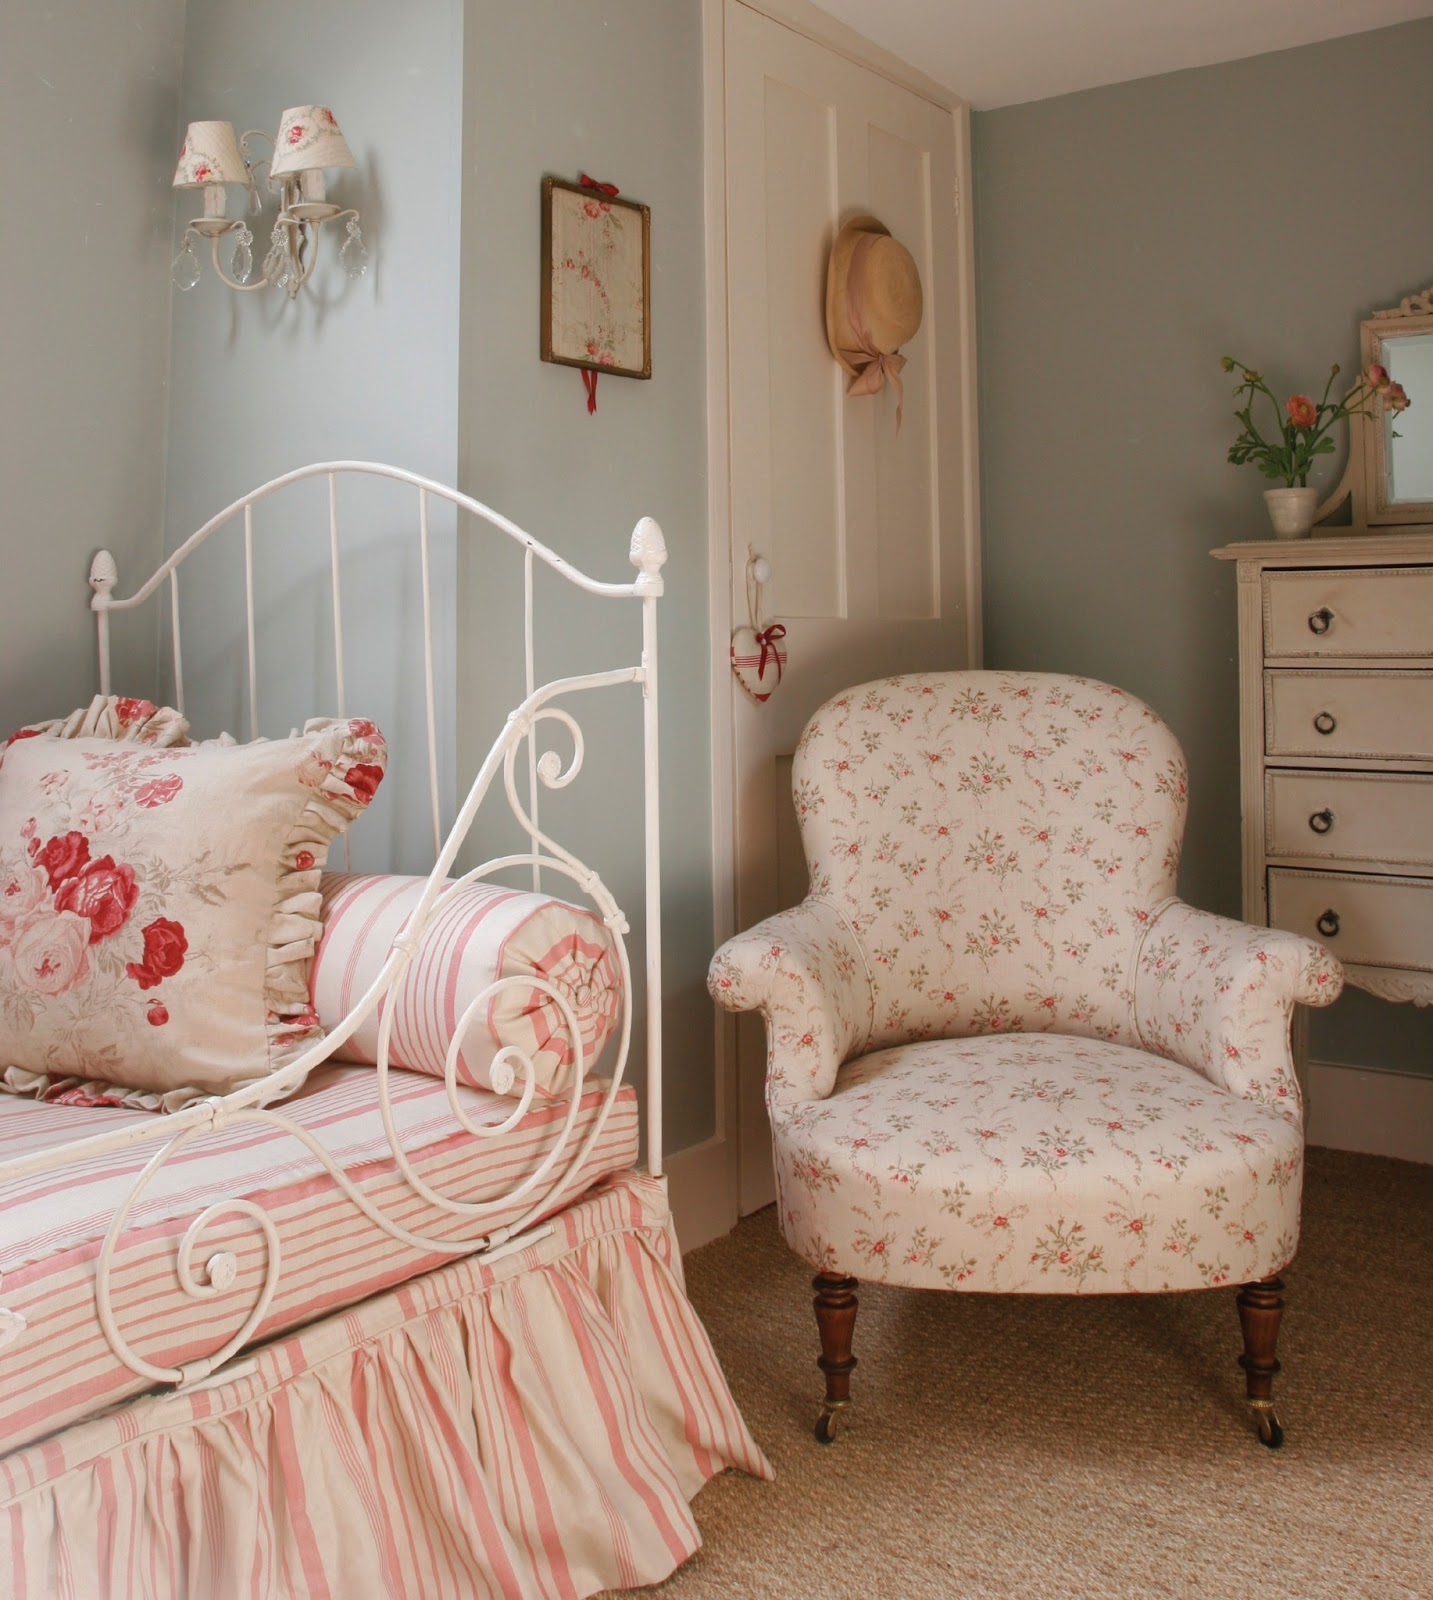 Cottage Bedrooms: Hydrangea Hill Cottage: Kate Forman's English Country Charm